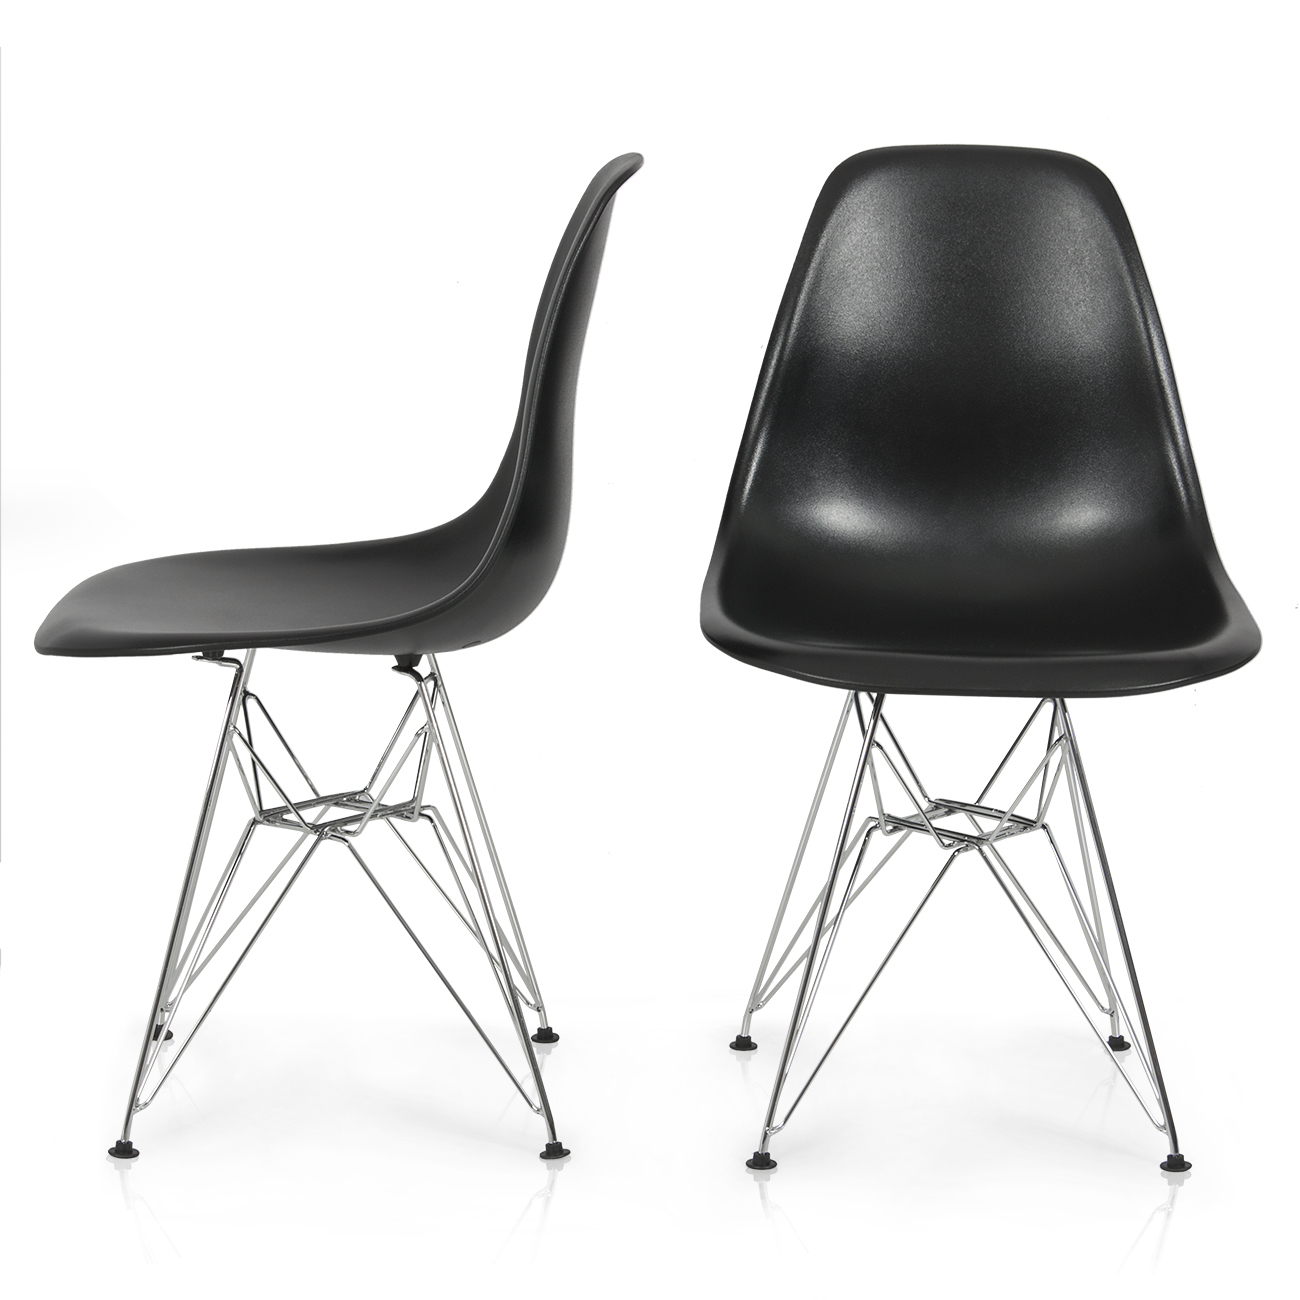 2x eames style dsw modern eiffel side chair molded abs plastic chairs wire base ebay. Black Bedroom Furniture Sets. Home Design Ideas